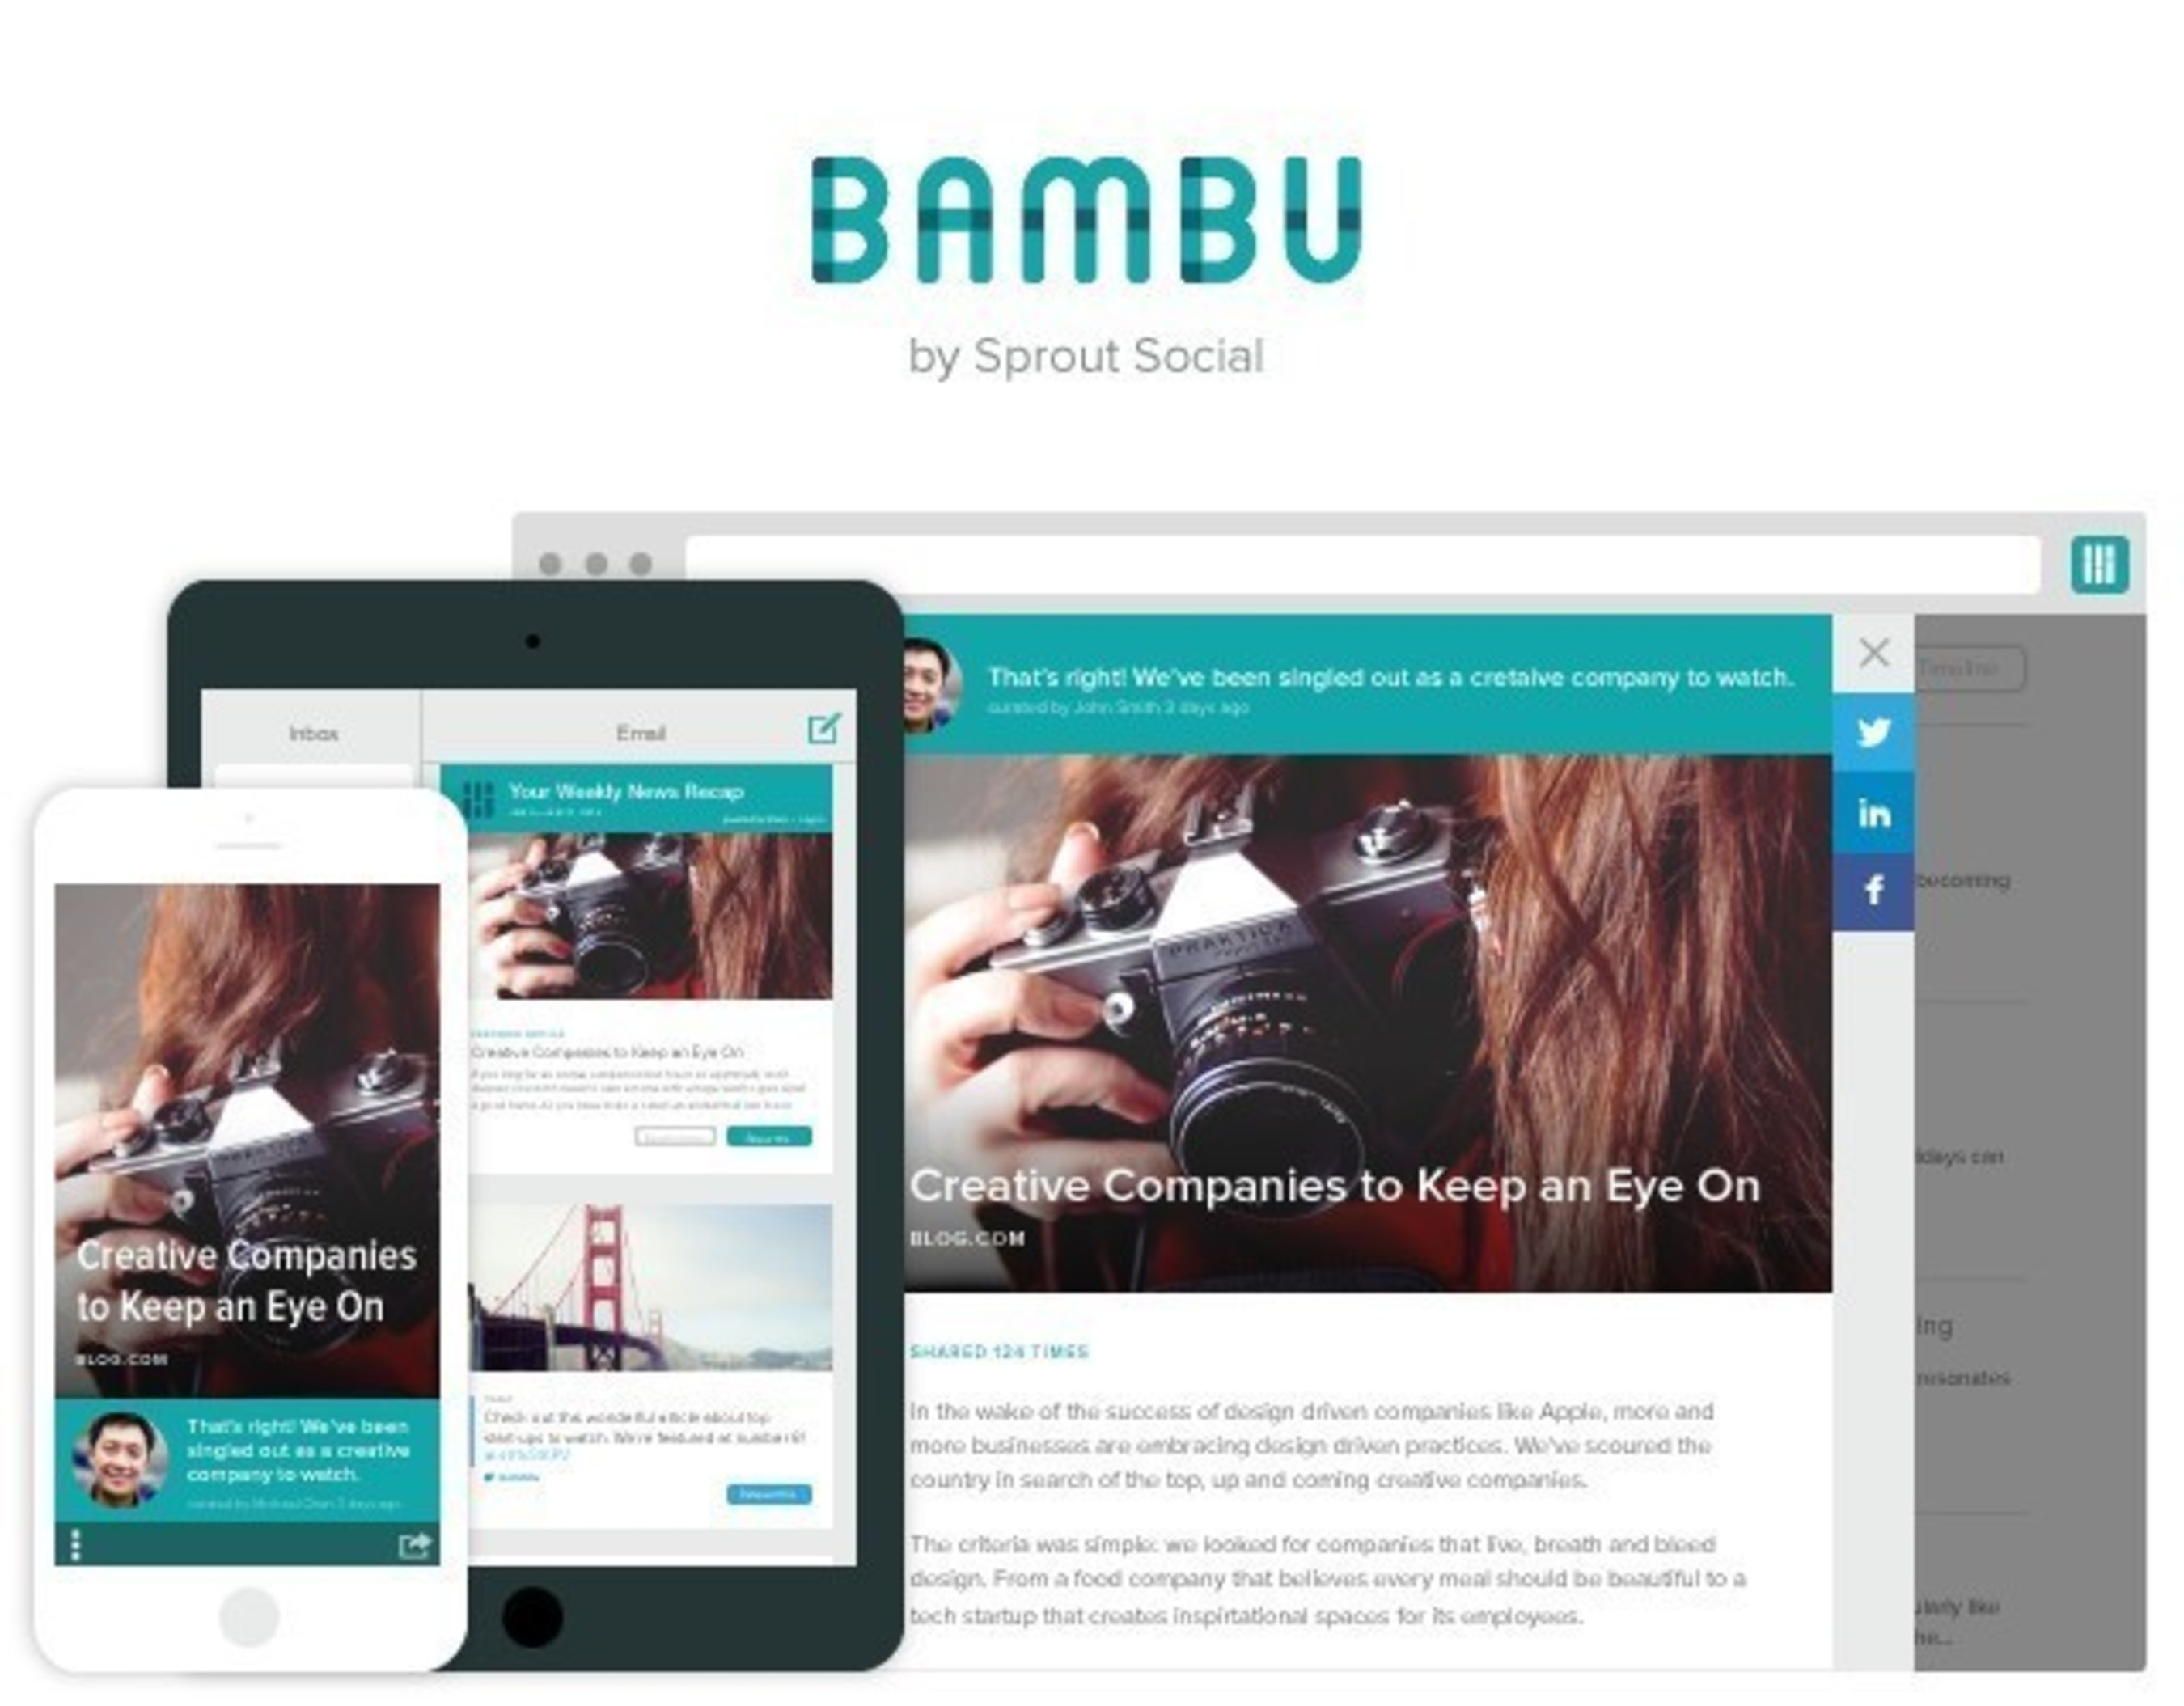 Introducing Bambu by Sprout Social, a New Social Advocacy Platform for Employees. Learn More at getbambu.com.